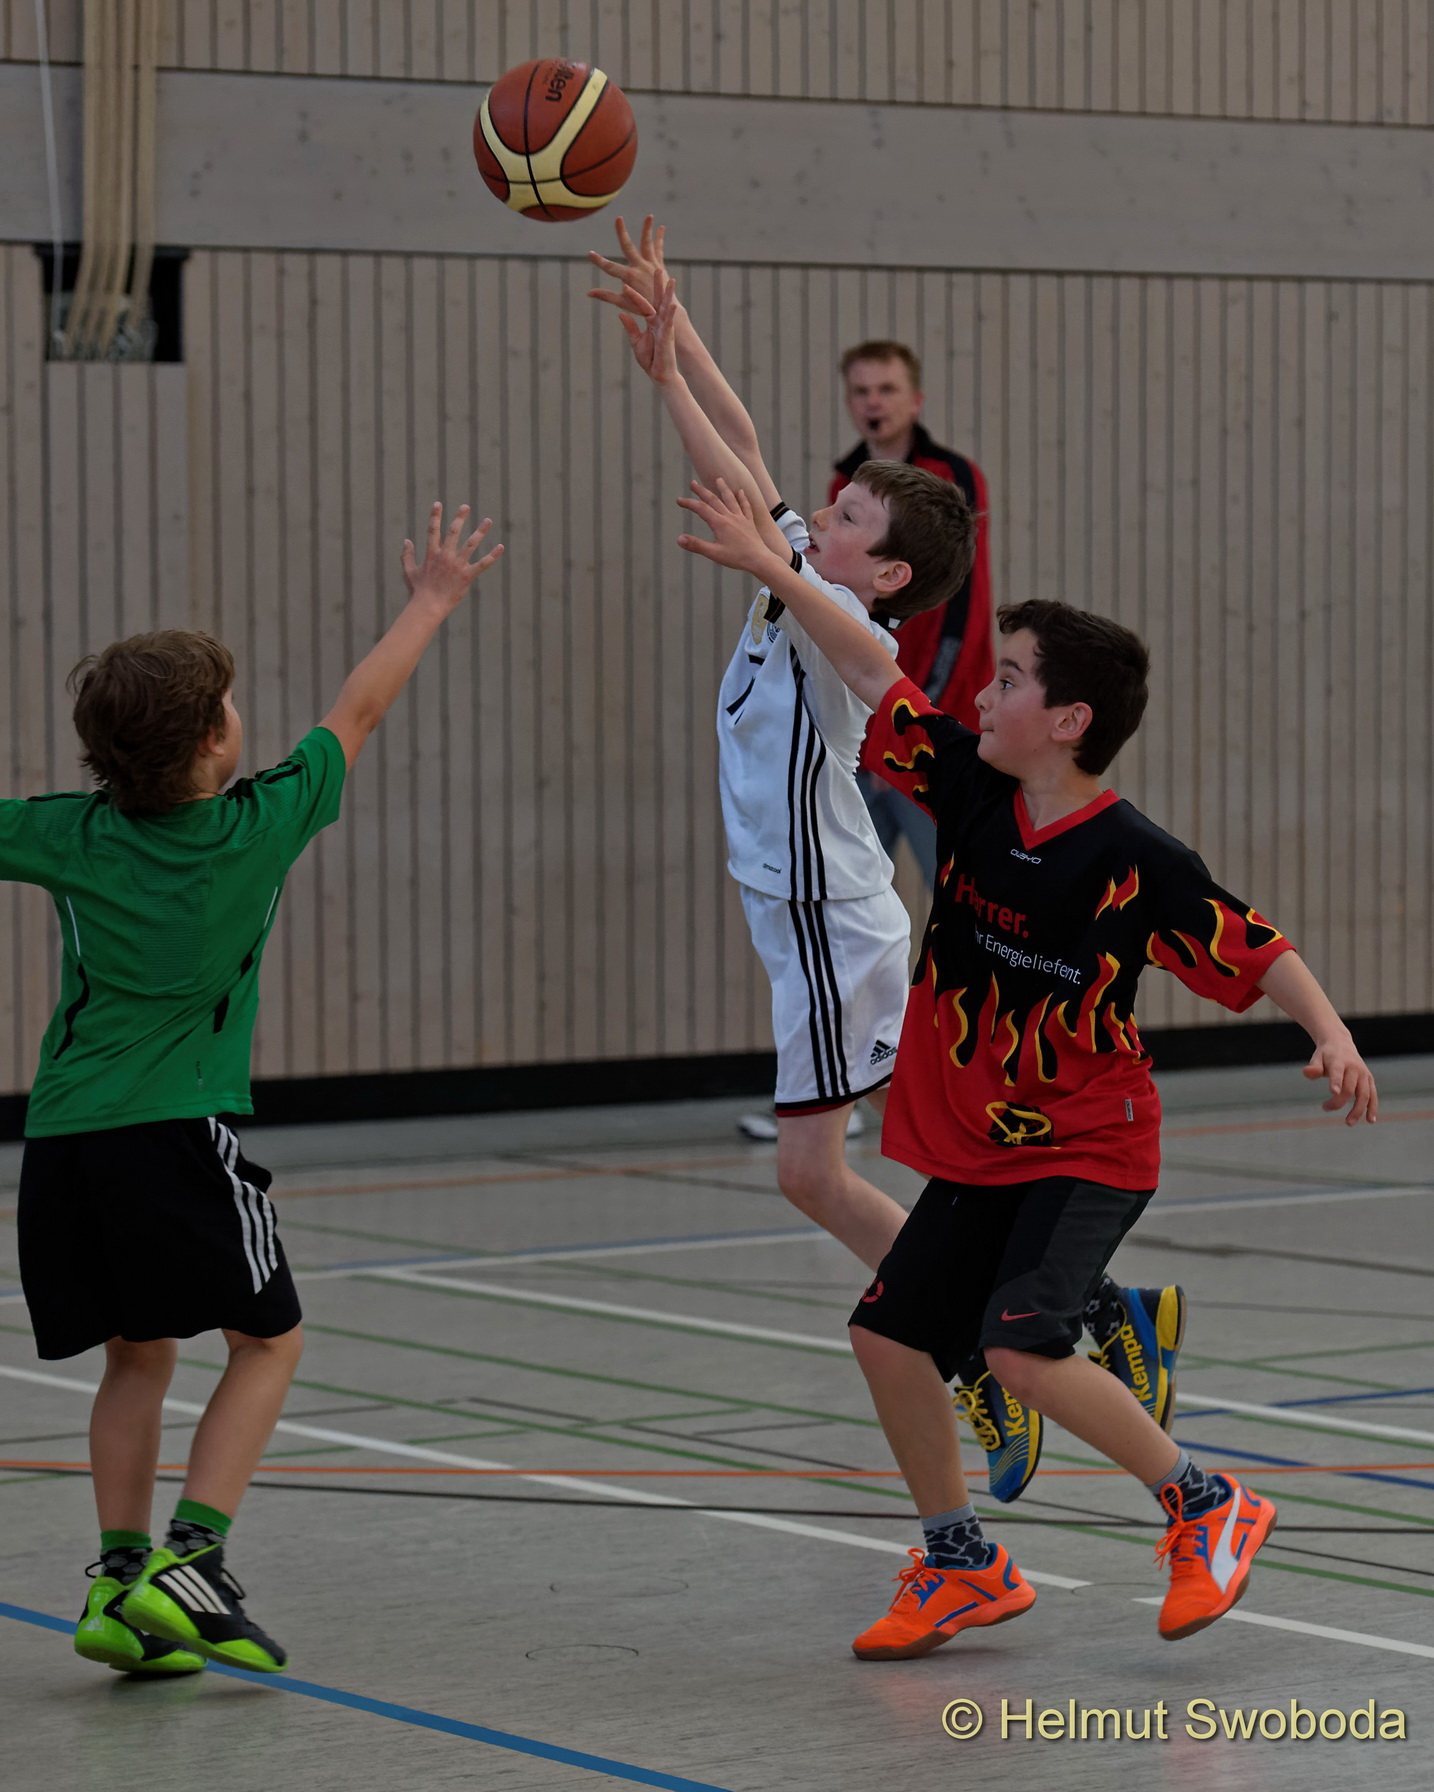 d170402-155843800-100-basketball_weilheim-mixed-turnier_33000558413_o